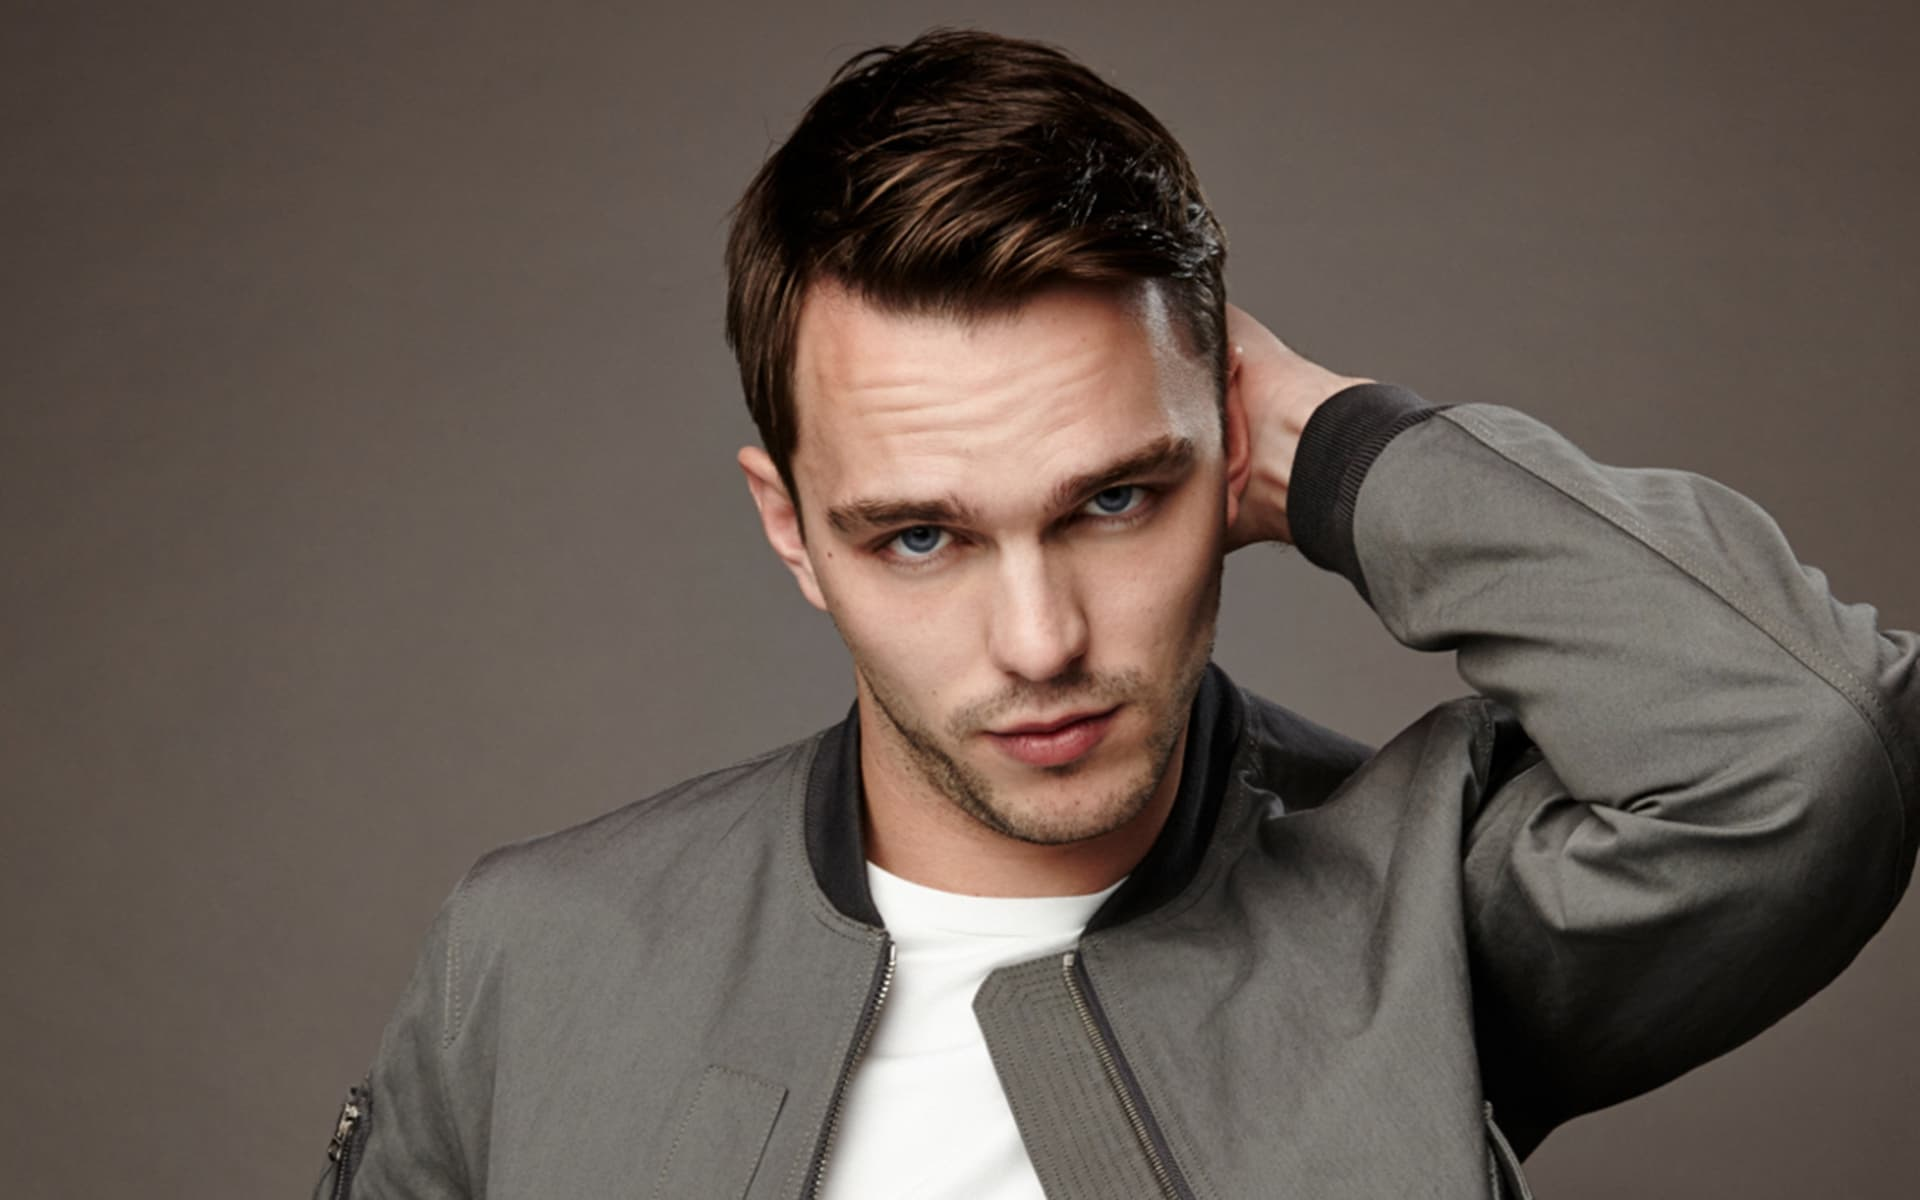 nicholas hoult wallpaper background - photo #3